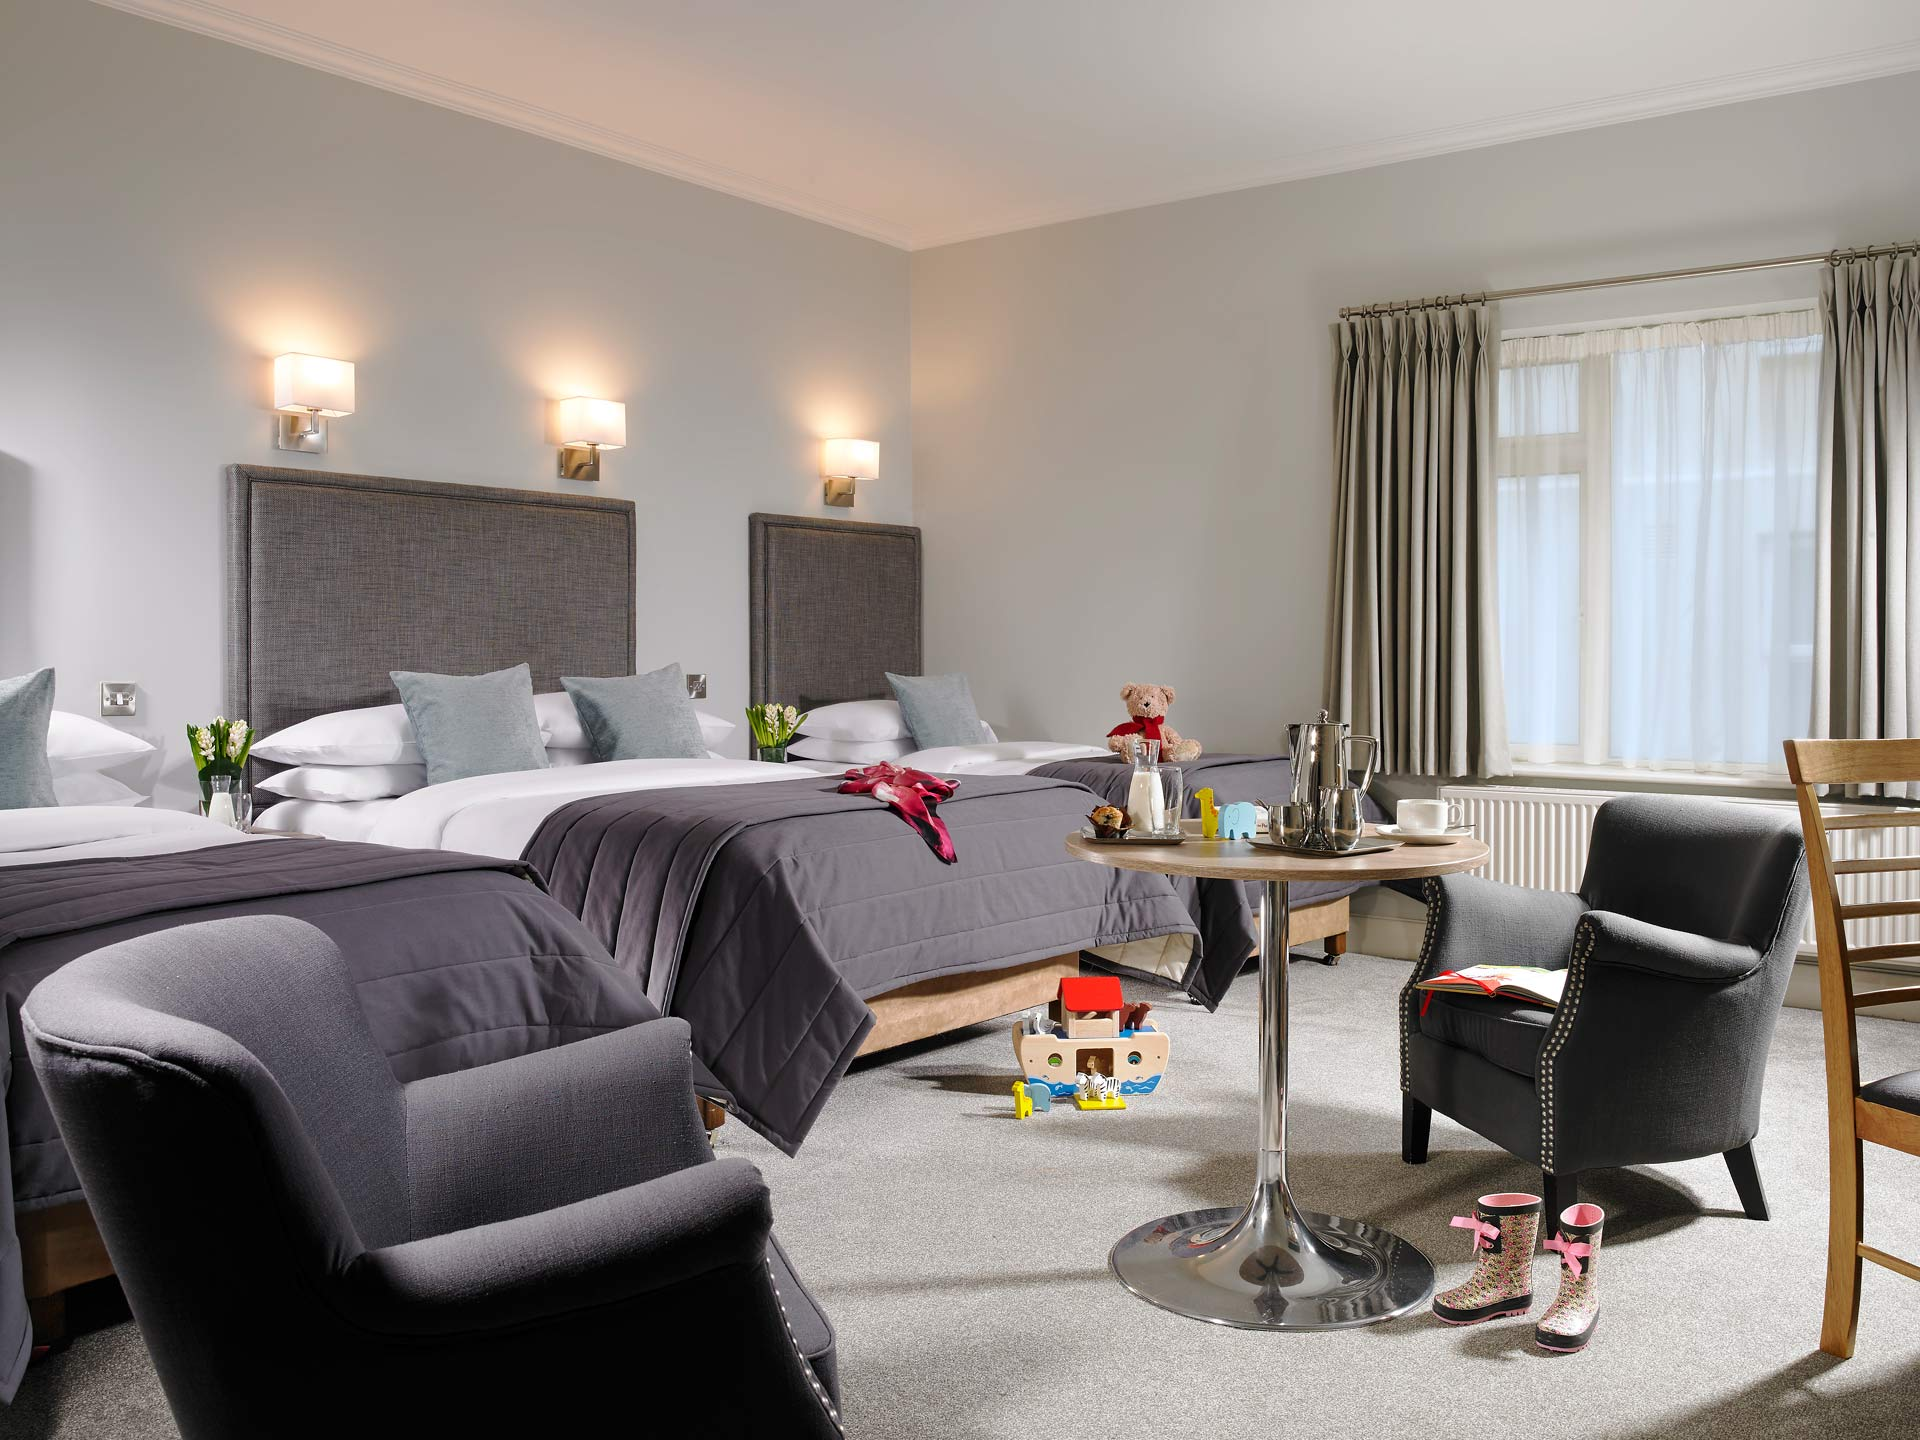 . Family Friendly Hotels Dublin   Sandymount Hotel Dublin